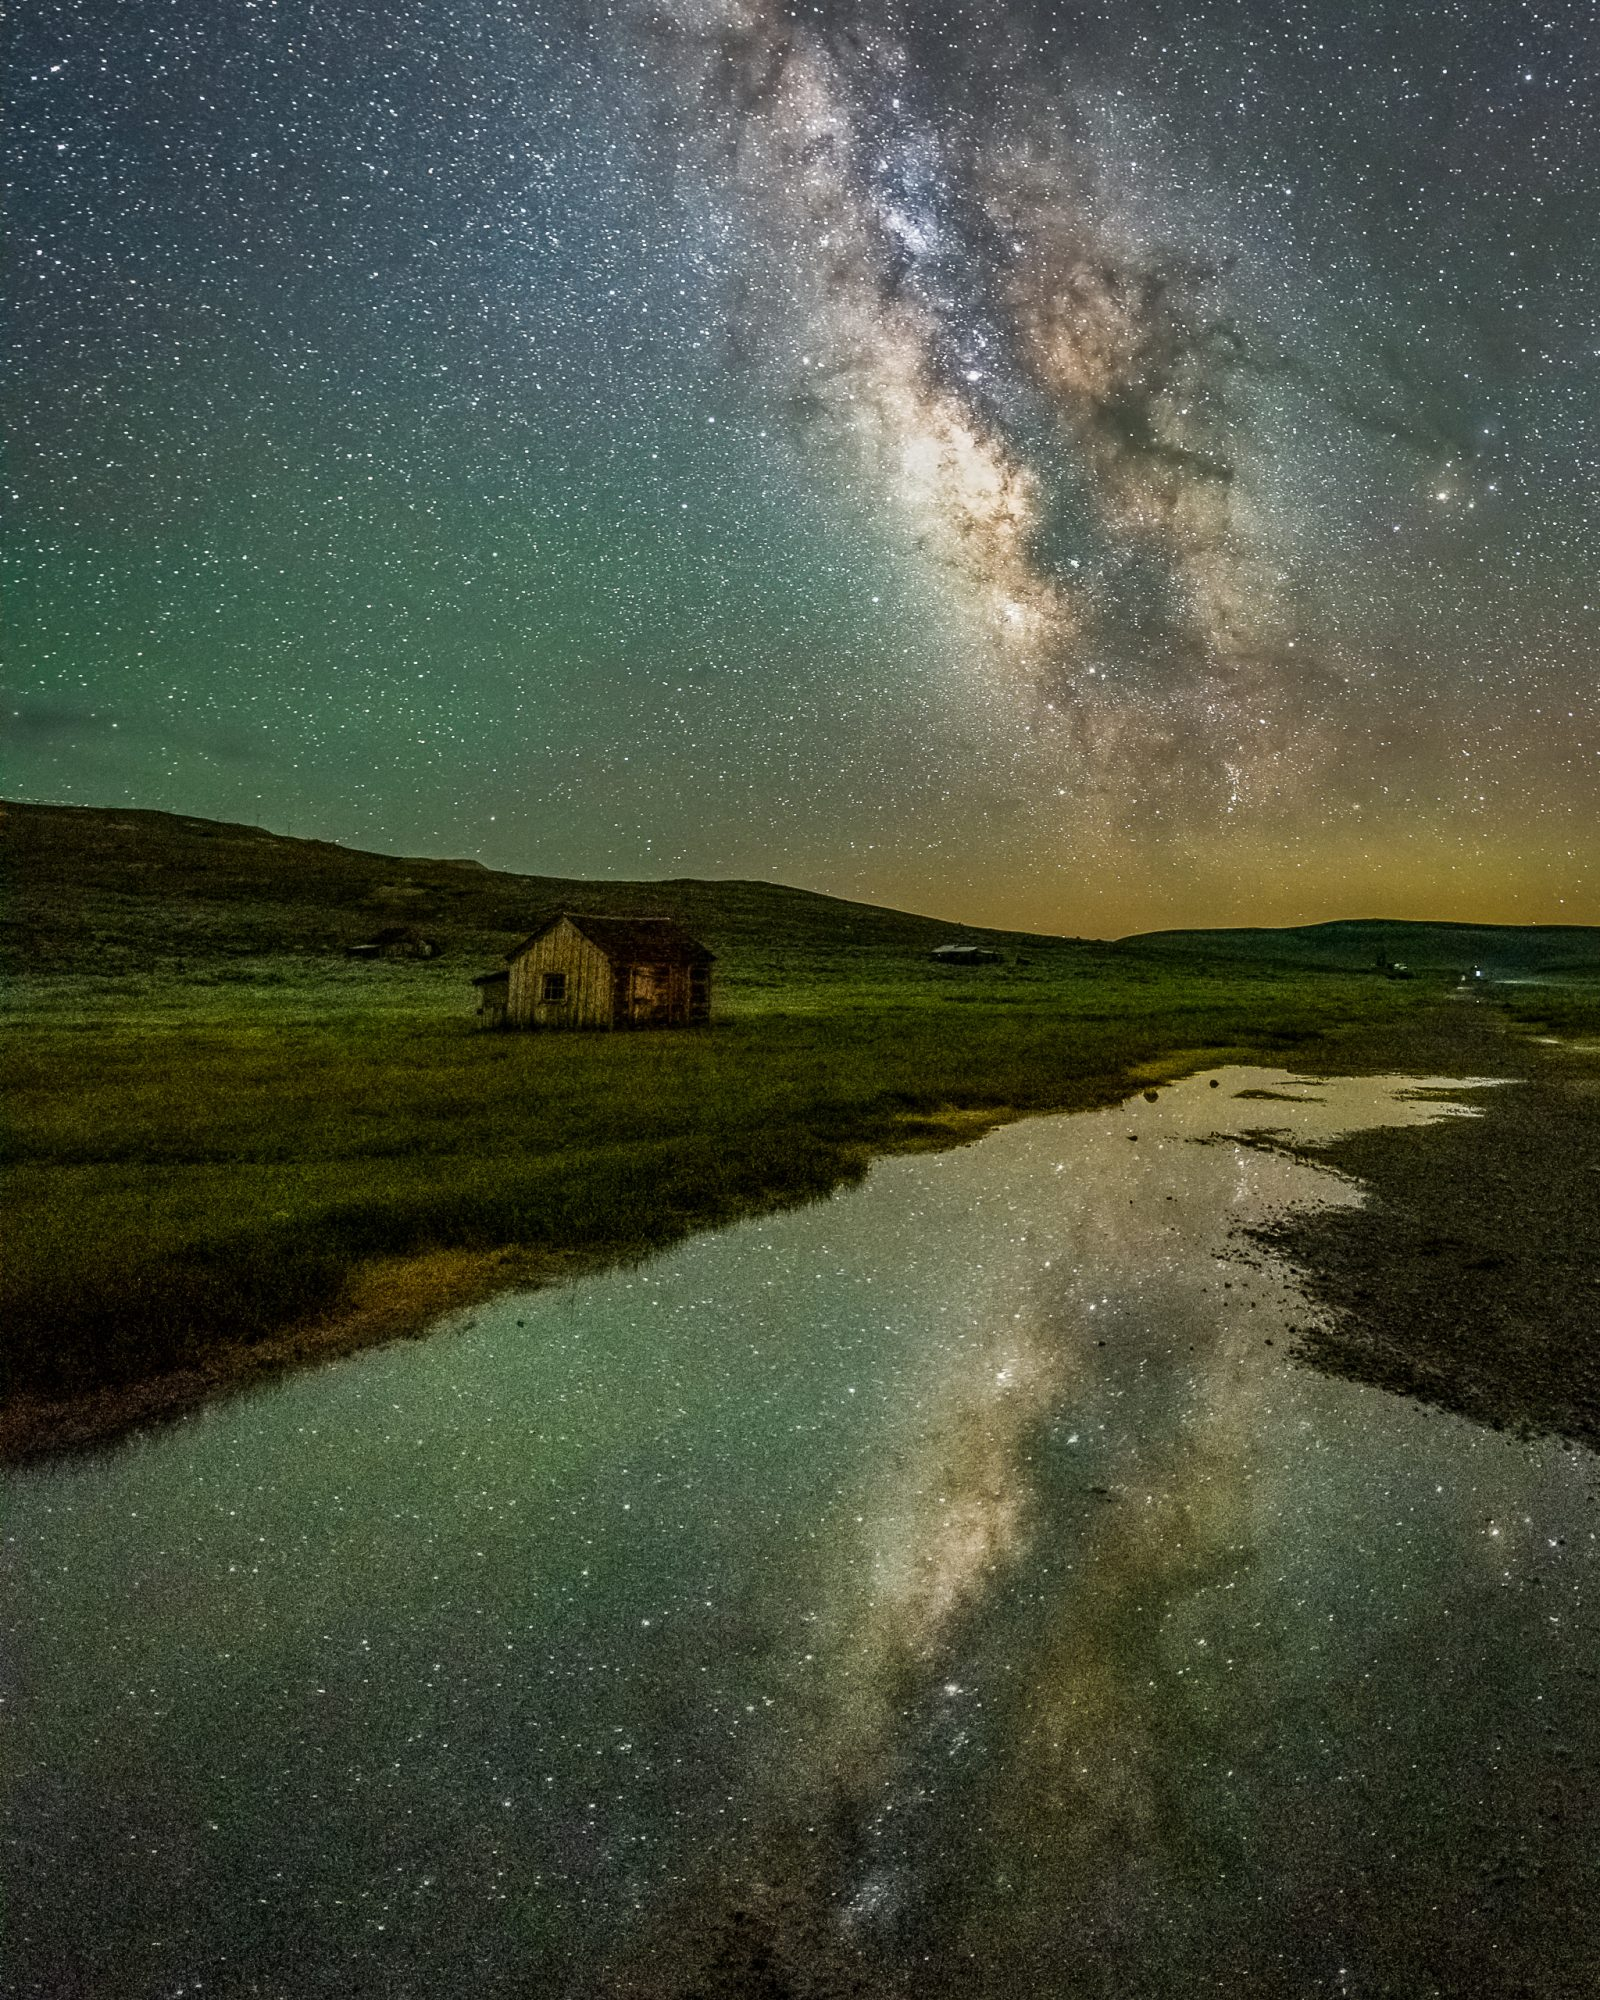 Milky Way Reflection in Bodie